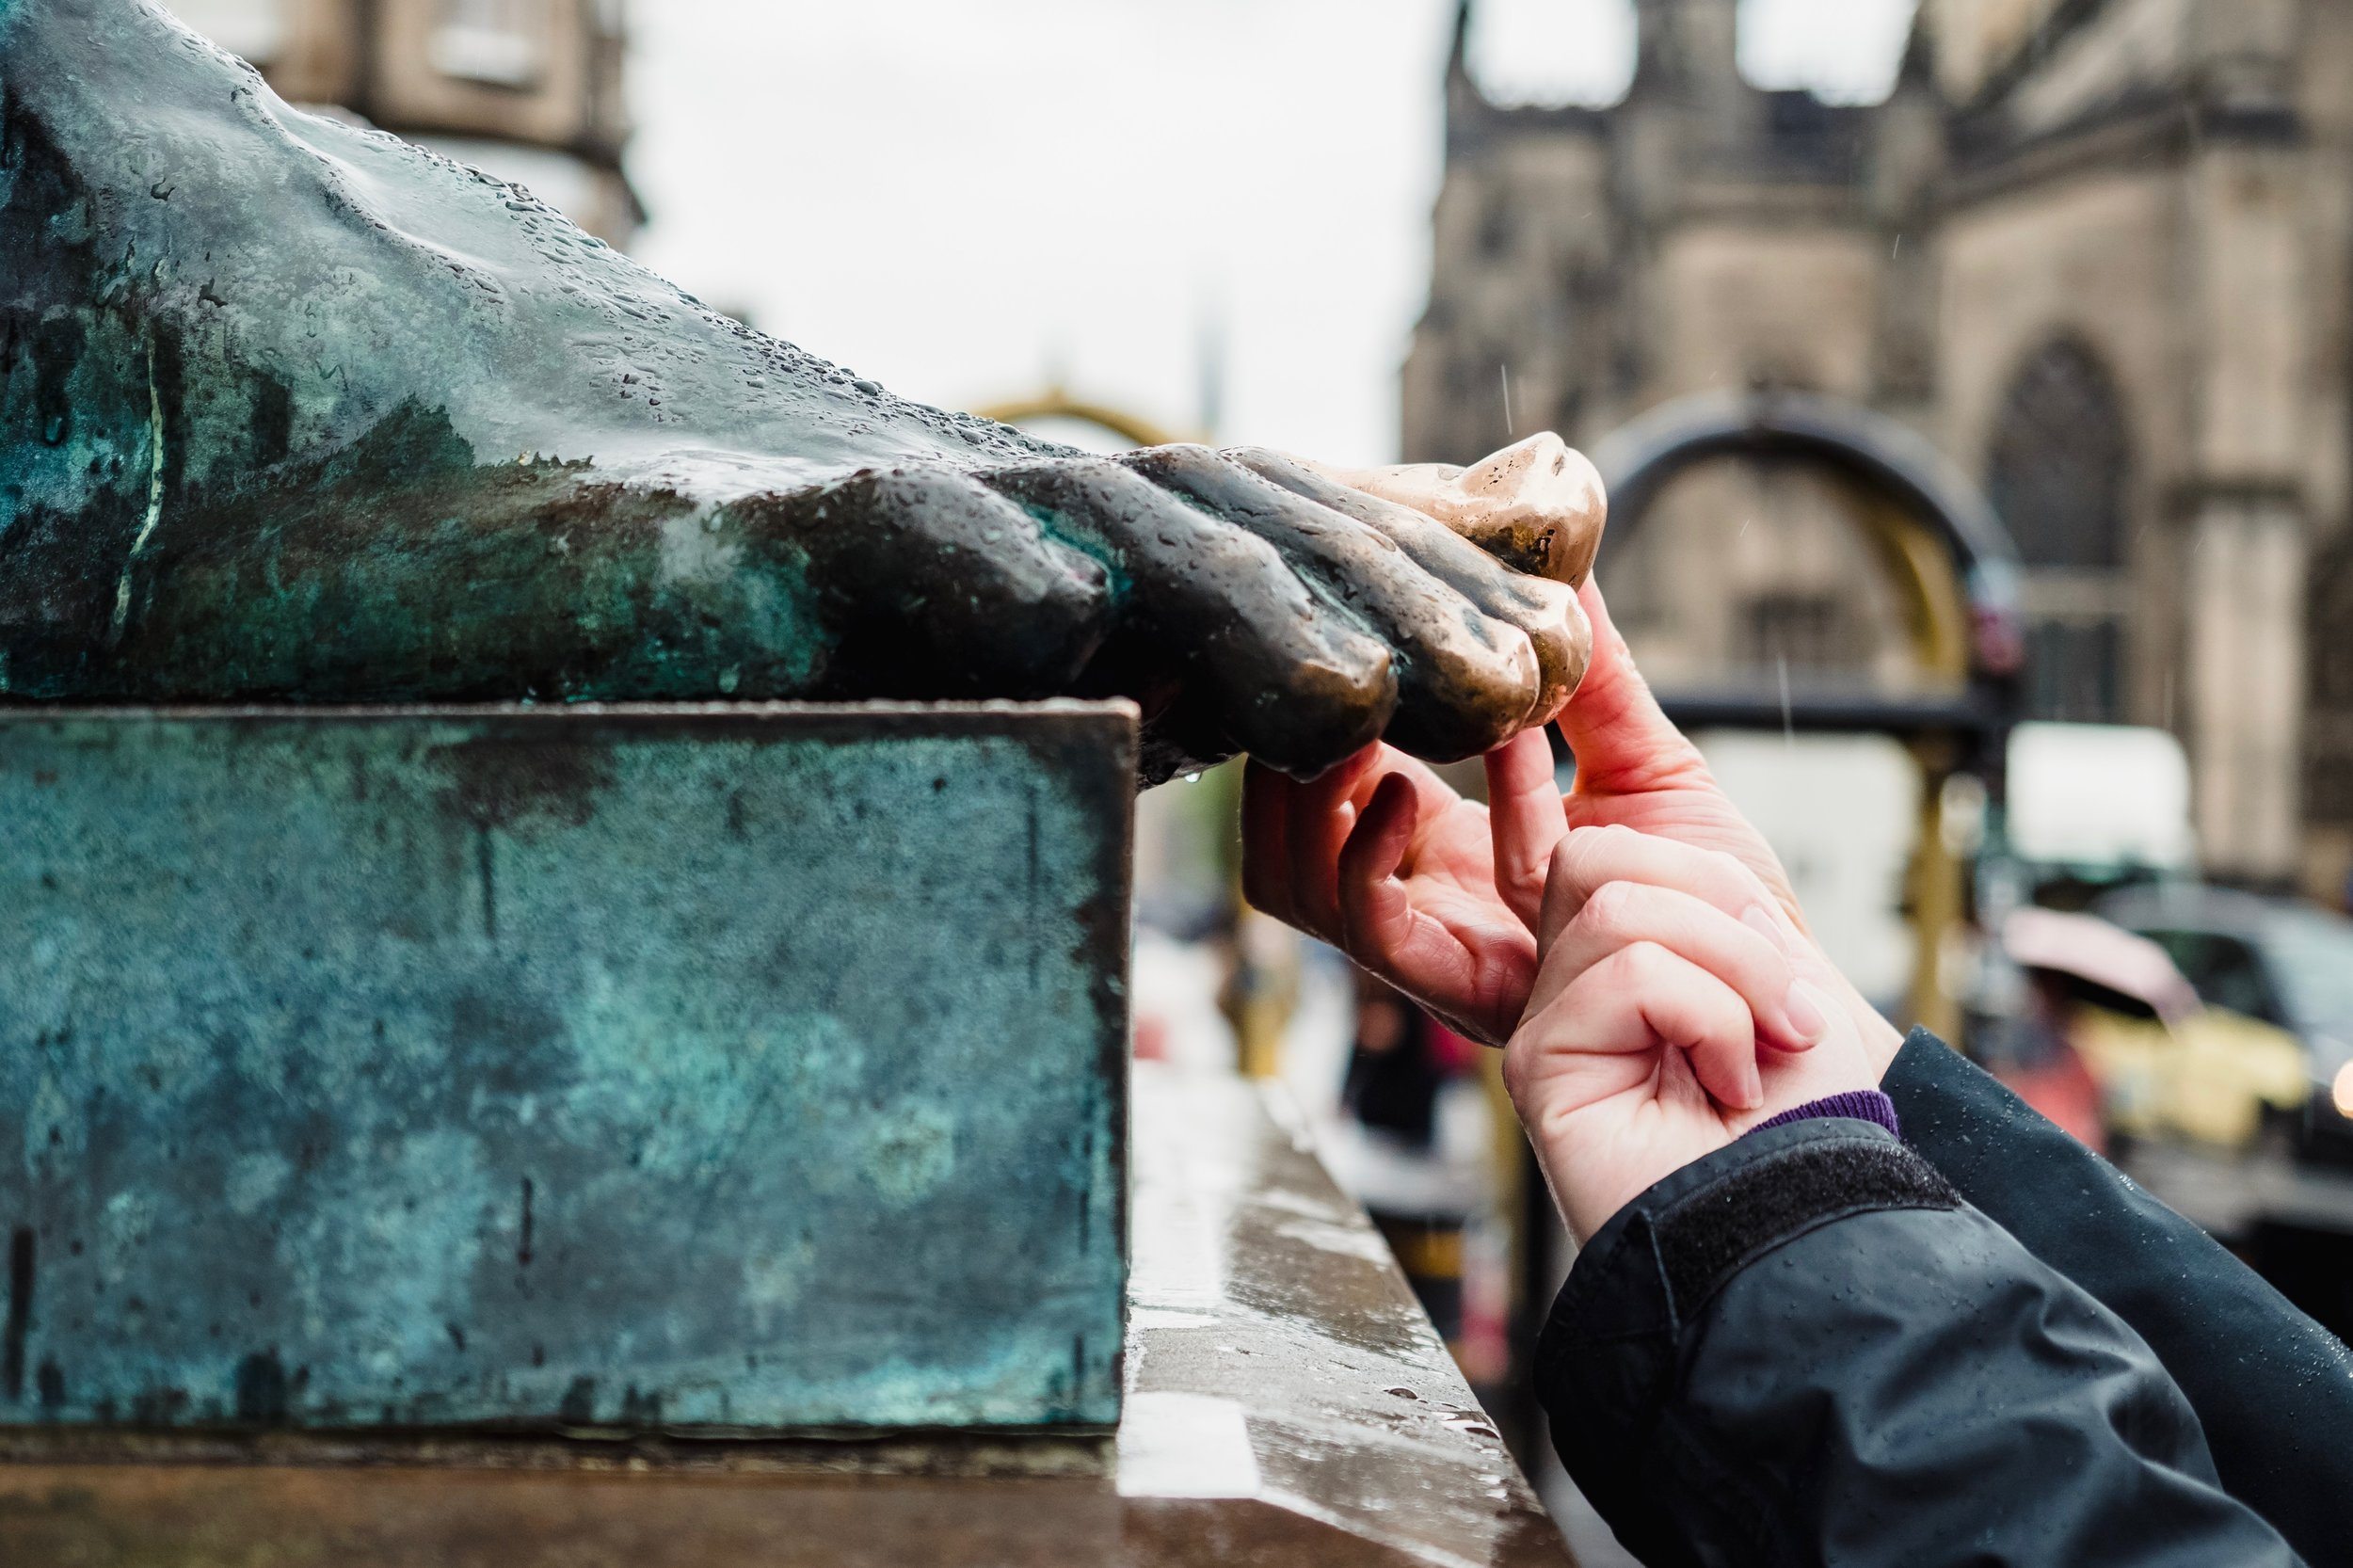 How many hands must've rubbed the toe of this David Hume statue for luck?